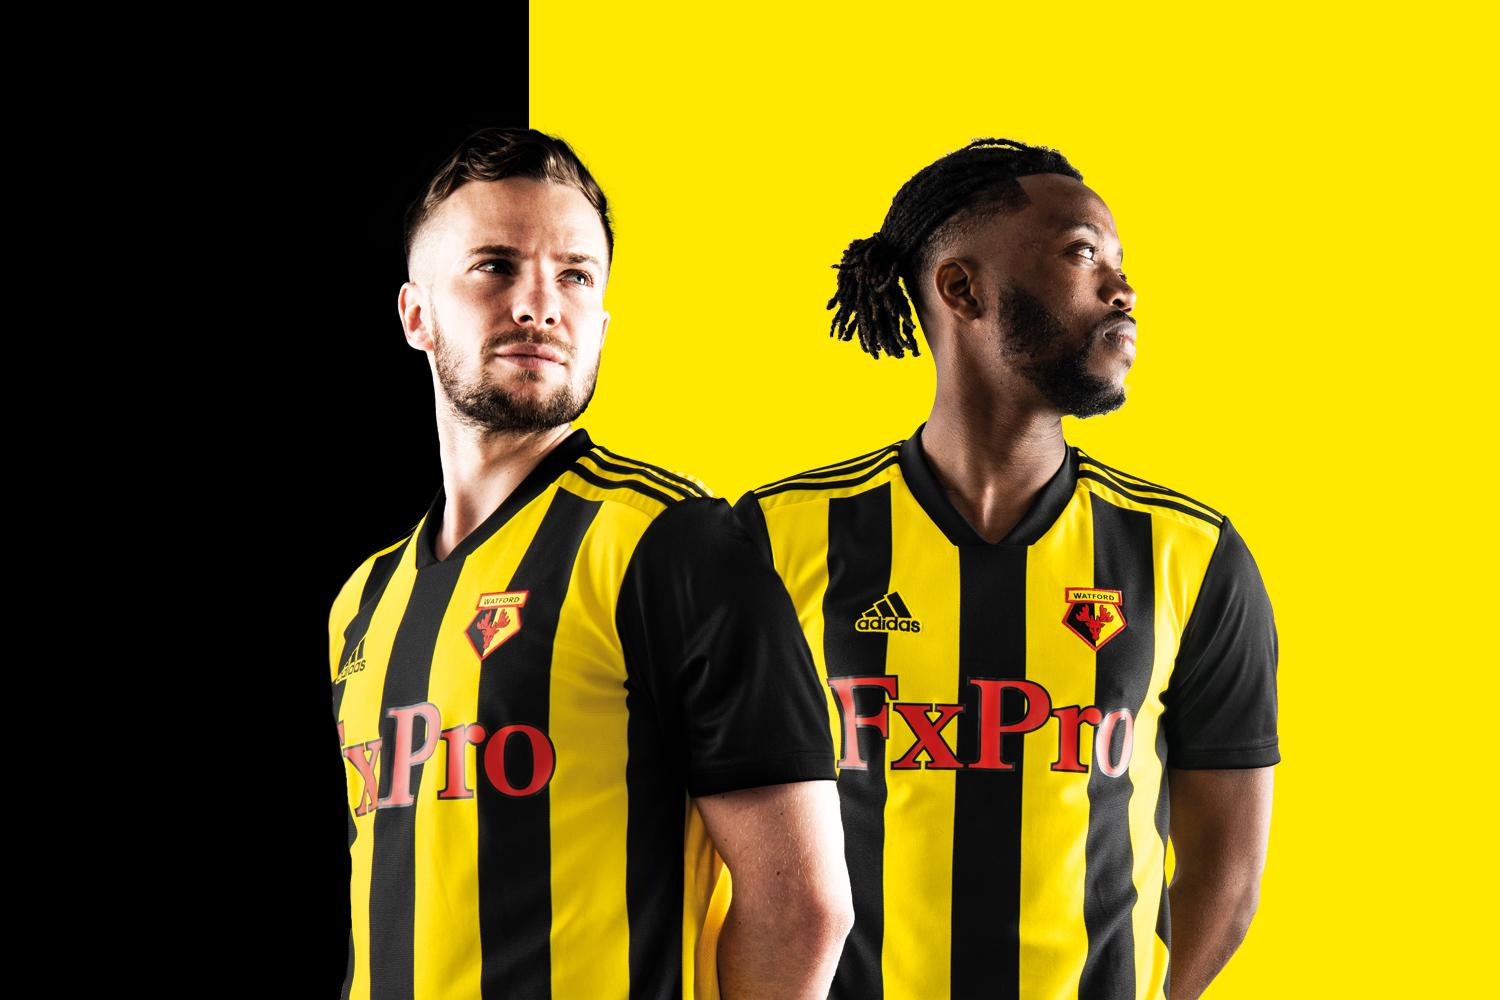 watford-18-19-home-kit-1.jpg